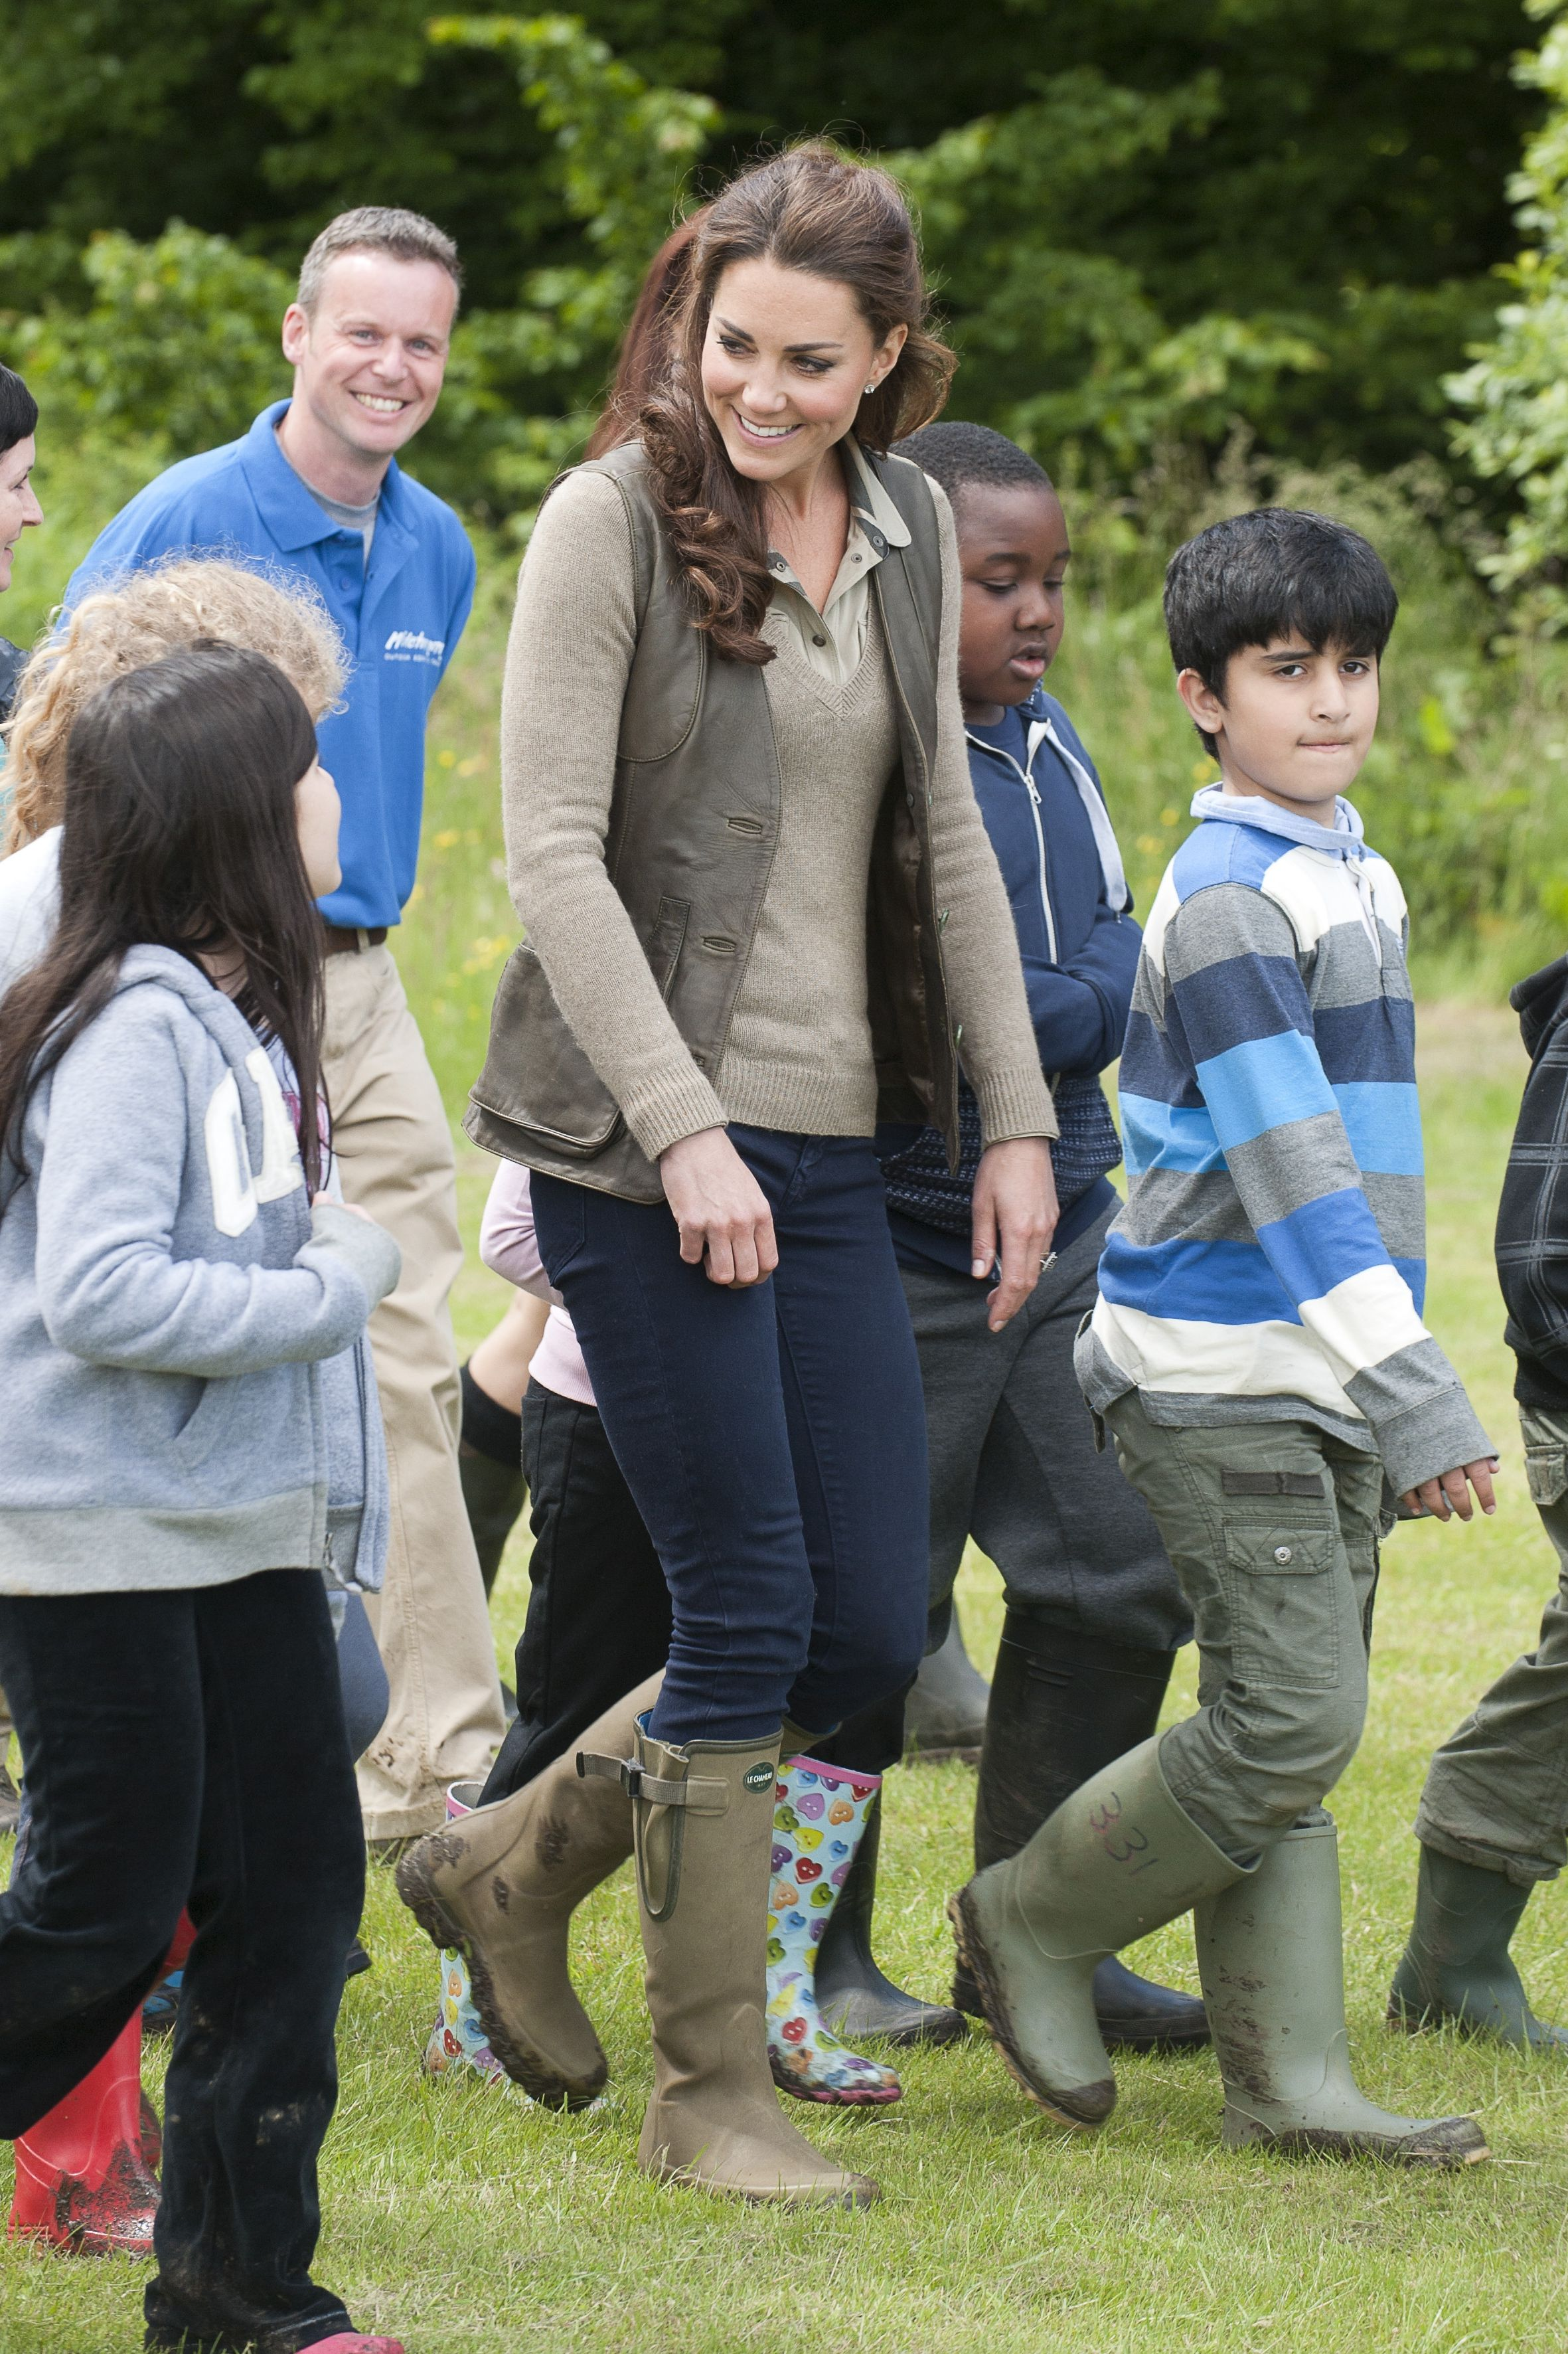 Shop Now Le Chameau Vierzonord Neoprene Lined Boot, $239 For outdoor activities, like this 2012 event with schoolchildren in Kent, Kate owns a pair of waterproof boots from the French brand Le Chameau.